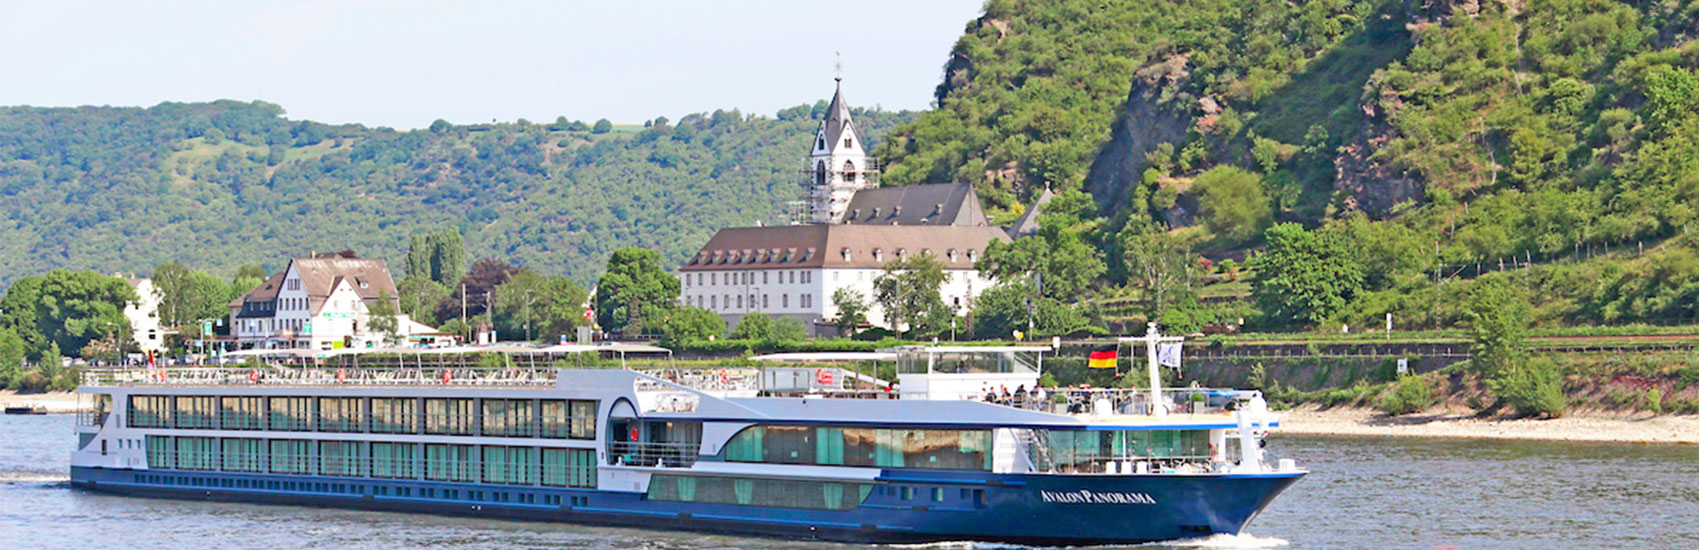 Save Now with Avalon Waterways 0